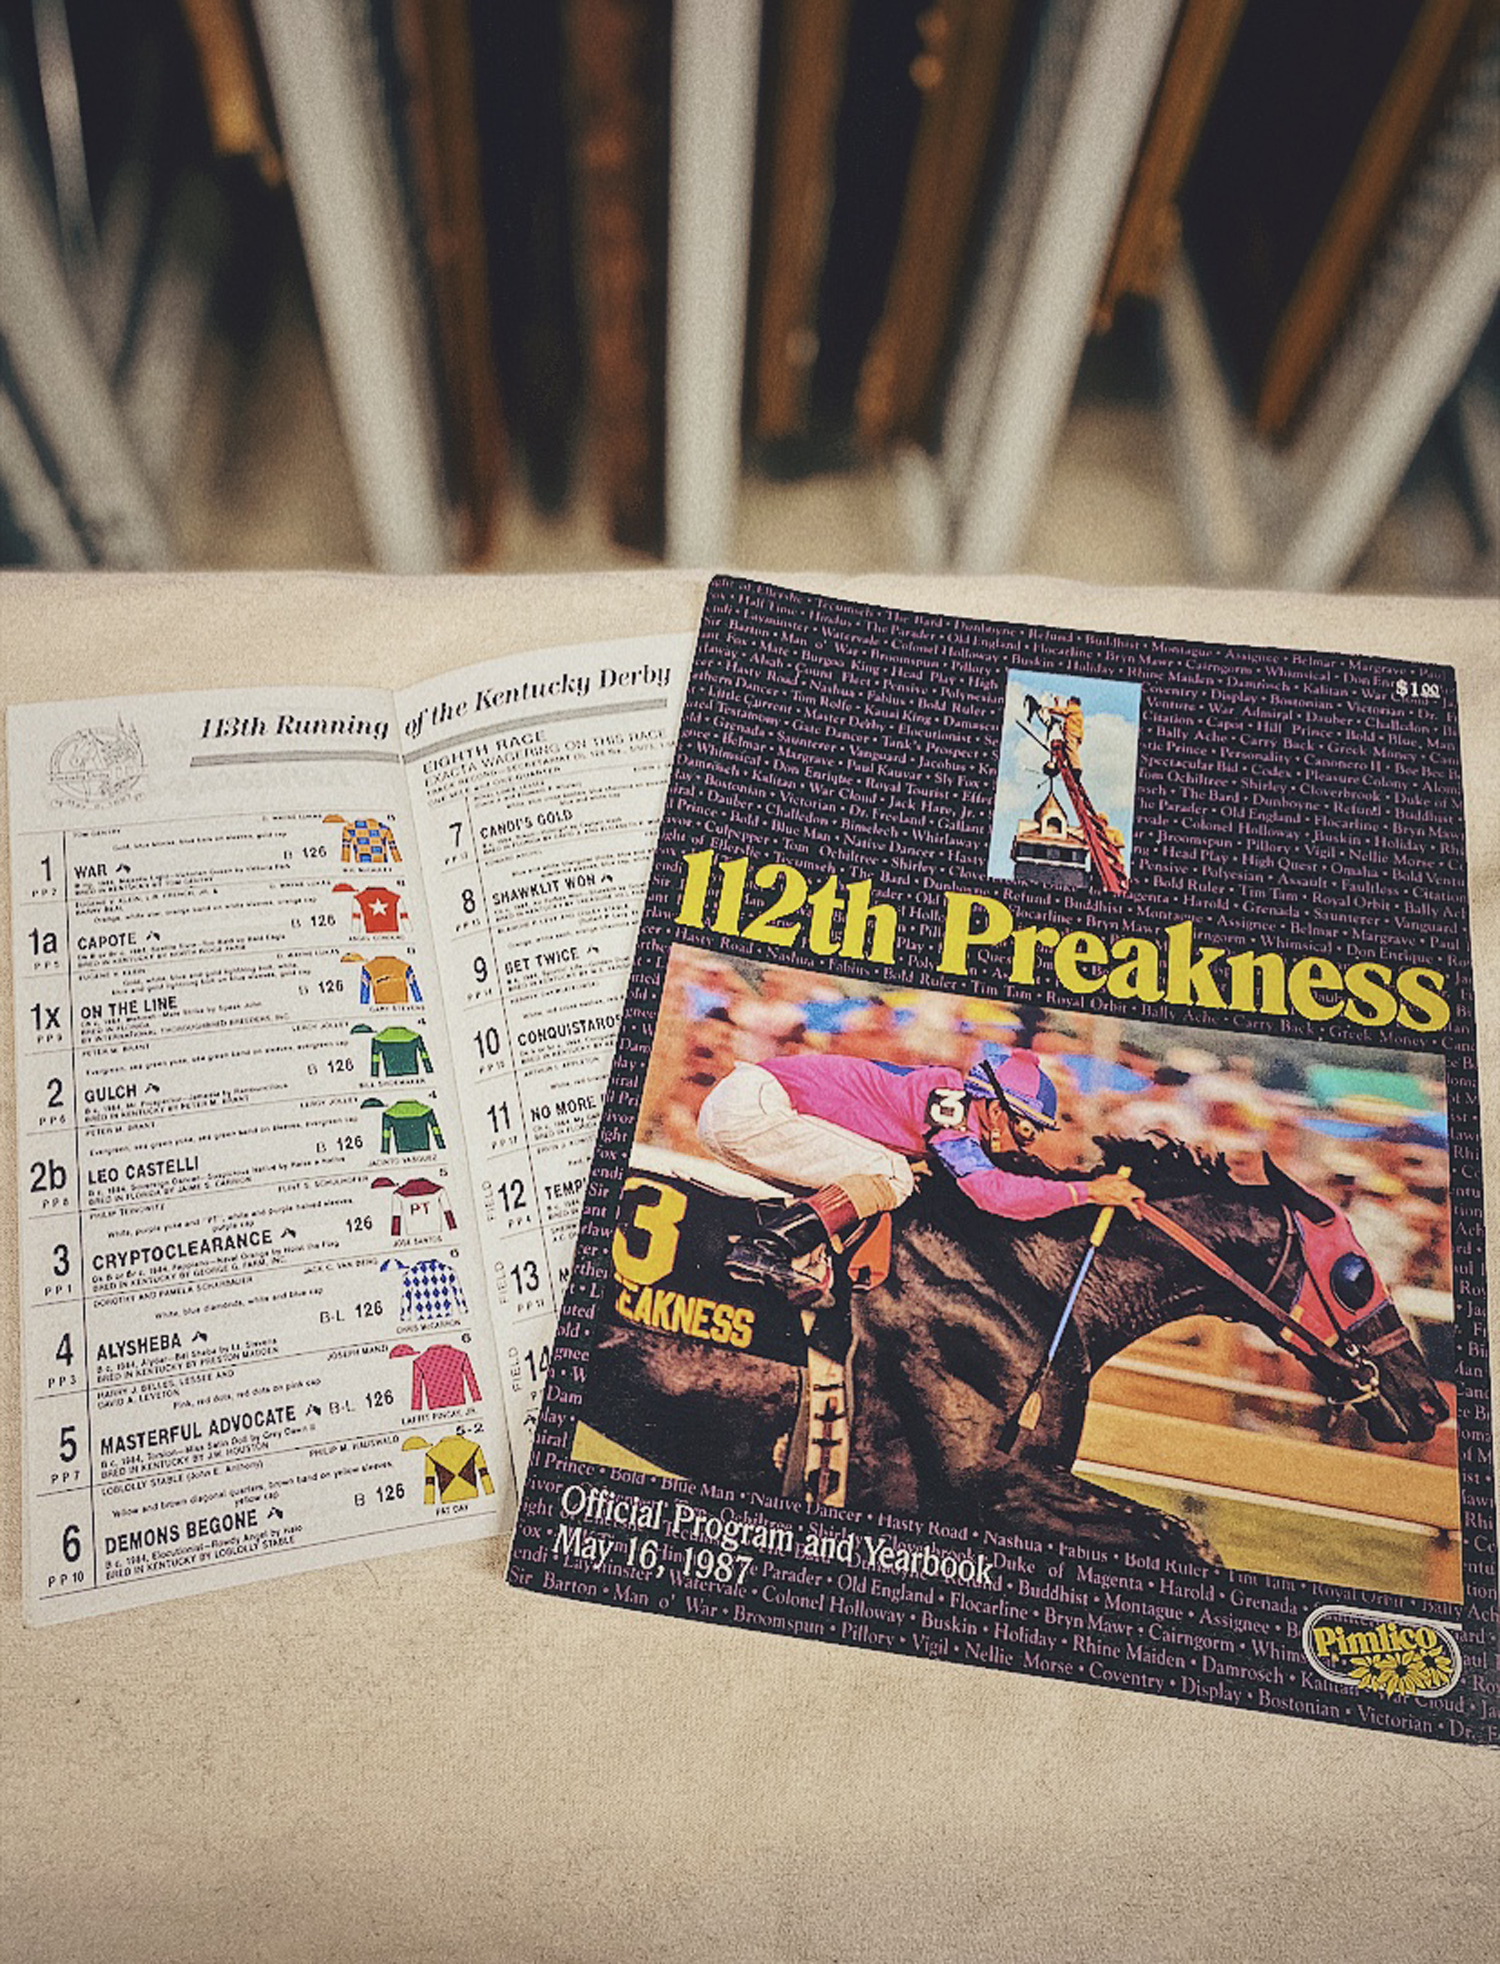 Program from the 1987 Kentucky Derby and Preakness, won by Alysheba